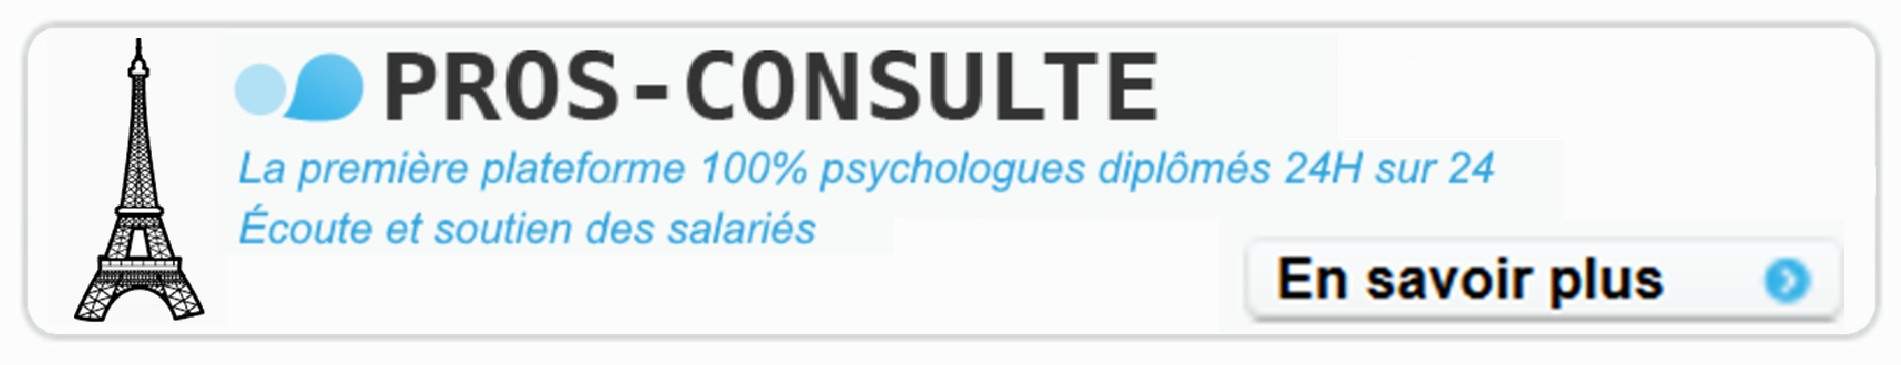 Pros-Consulte France